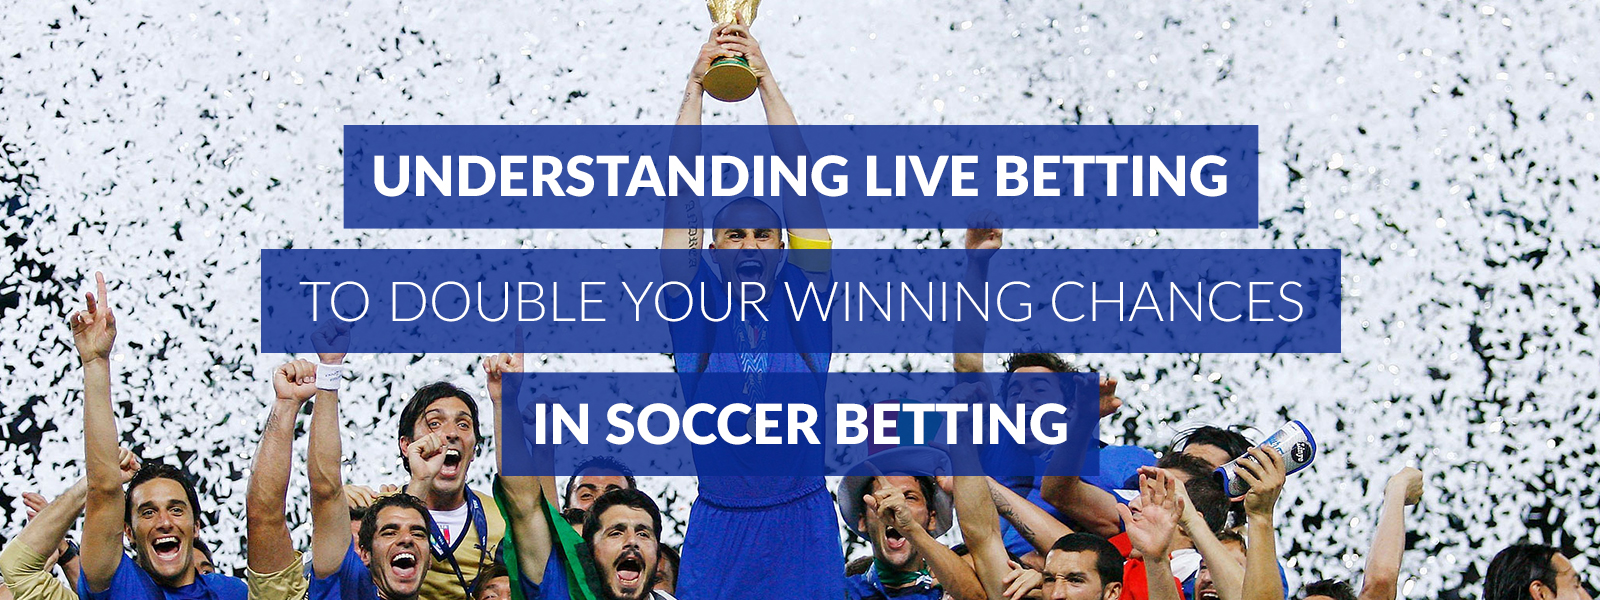 Understanding Live Betting To Double Your Winning Chances in Soccer Betting